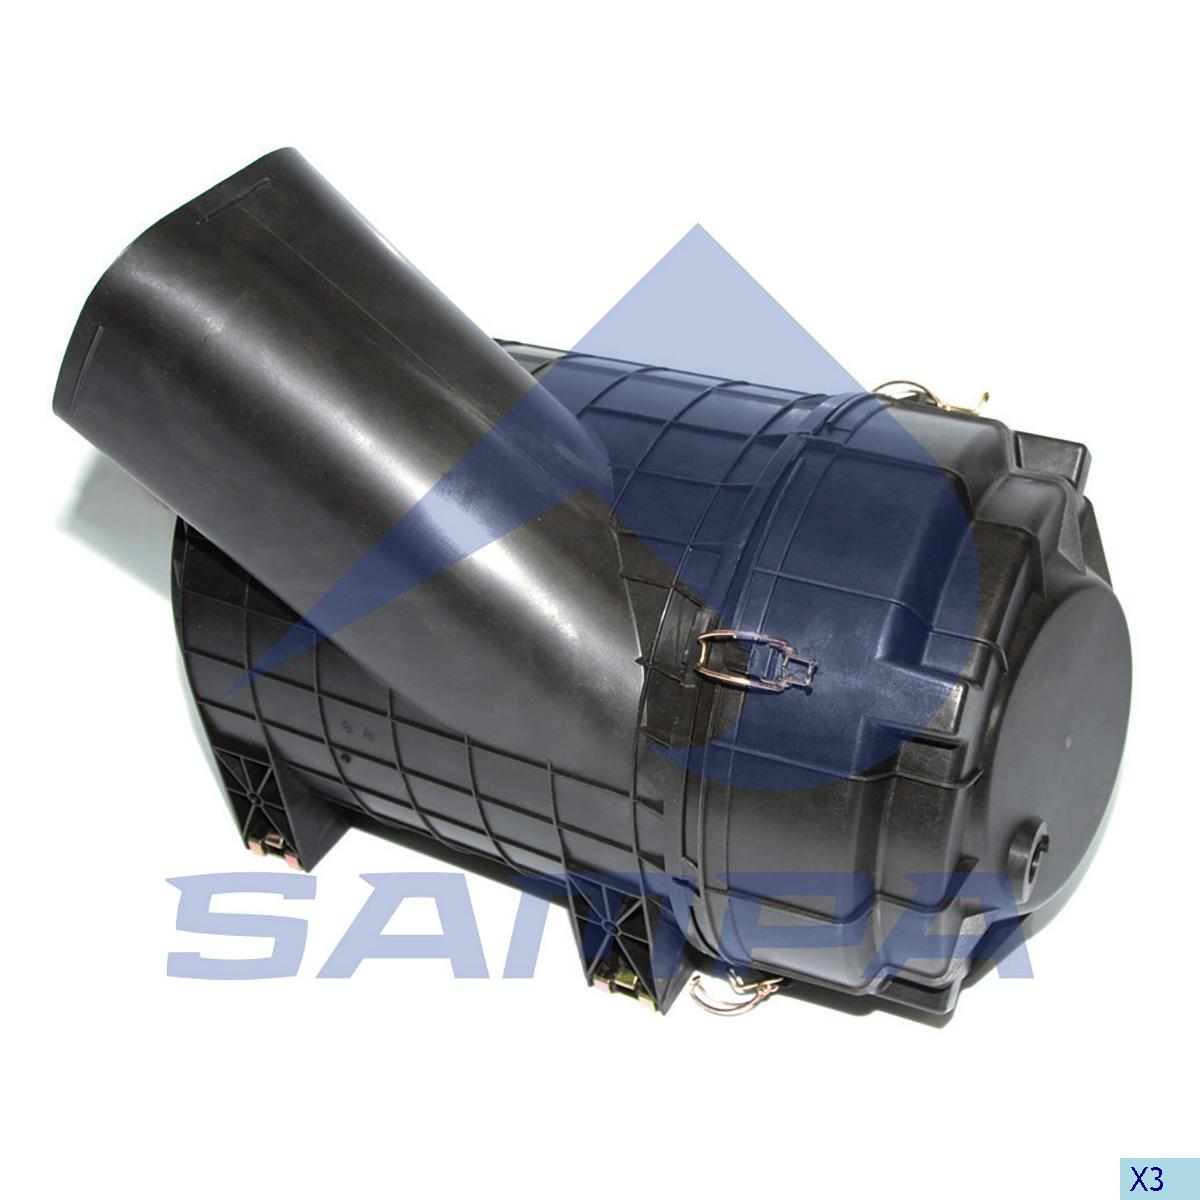 Housing, Air Filter, Scania, Engine